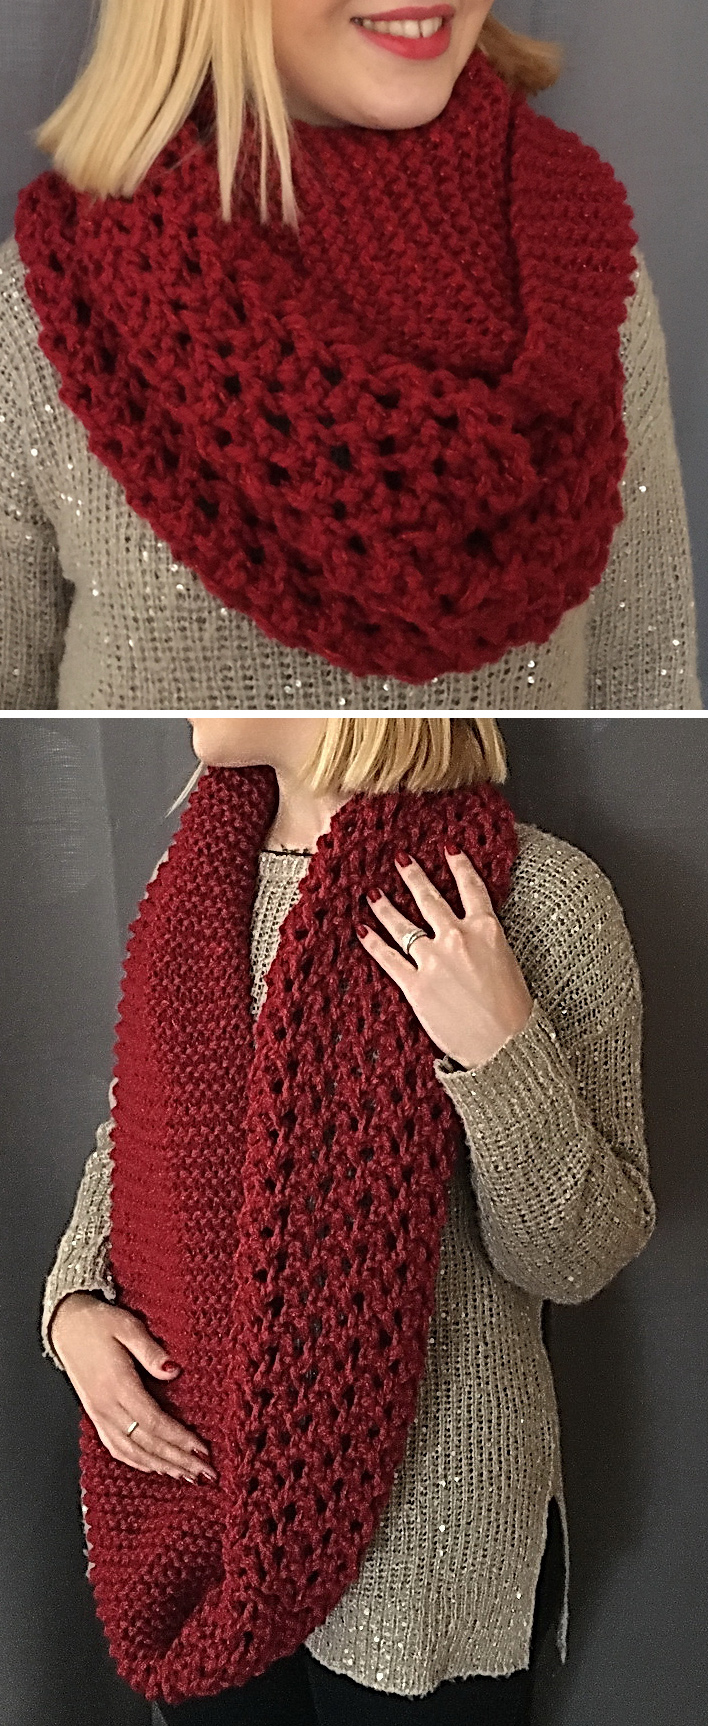 Free until Jan. 7, 2018 Only Knitting Pattern for Lily Red Snood